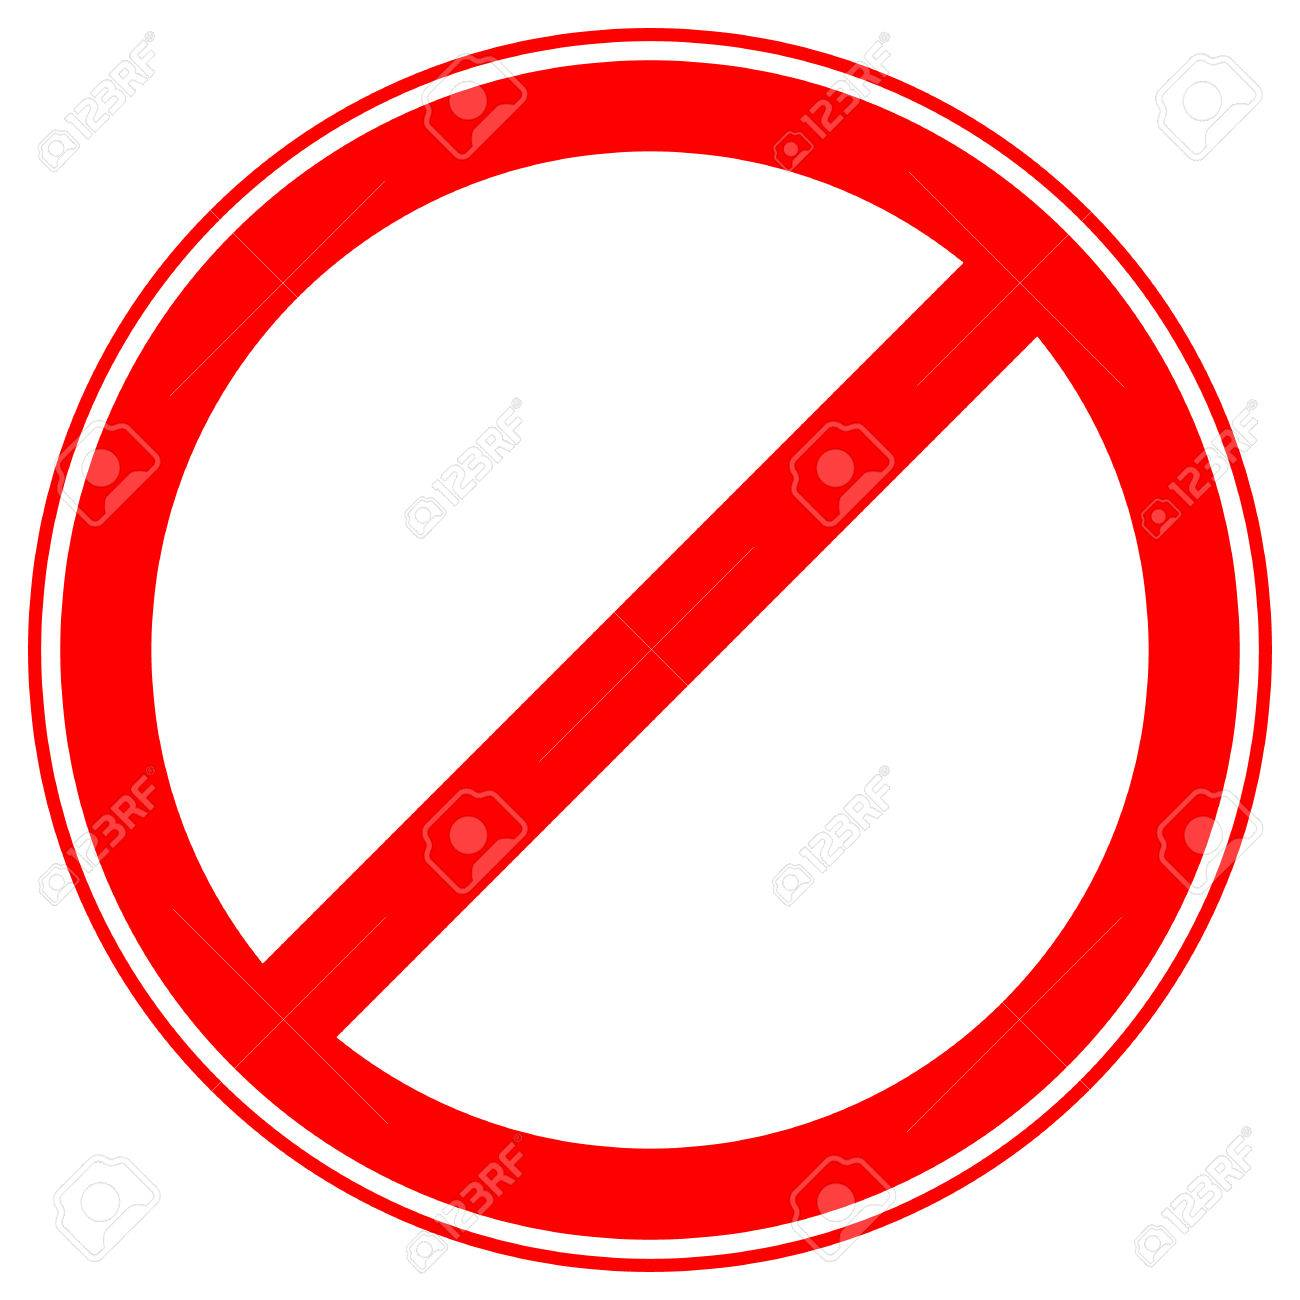 image regarding Printable Road Signs referred to as Printable restriction, prohibition signs or symptoms, prohibitive street symptoms